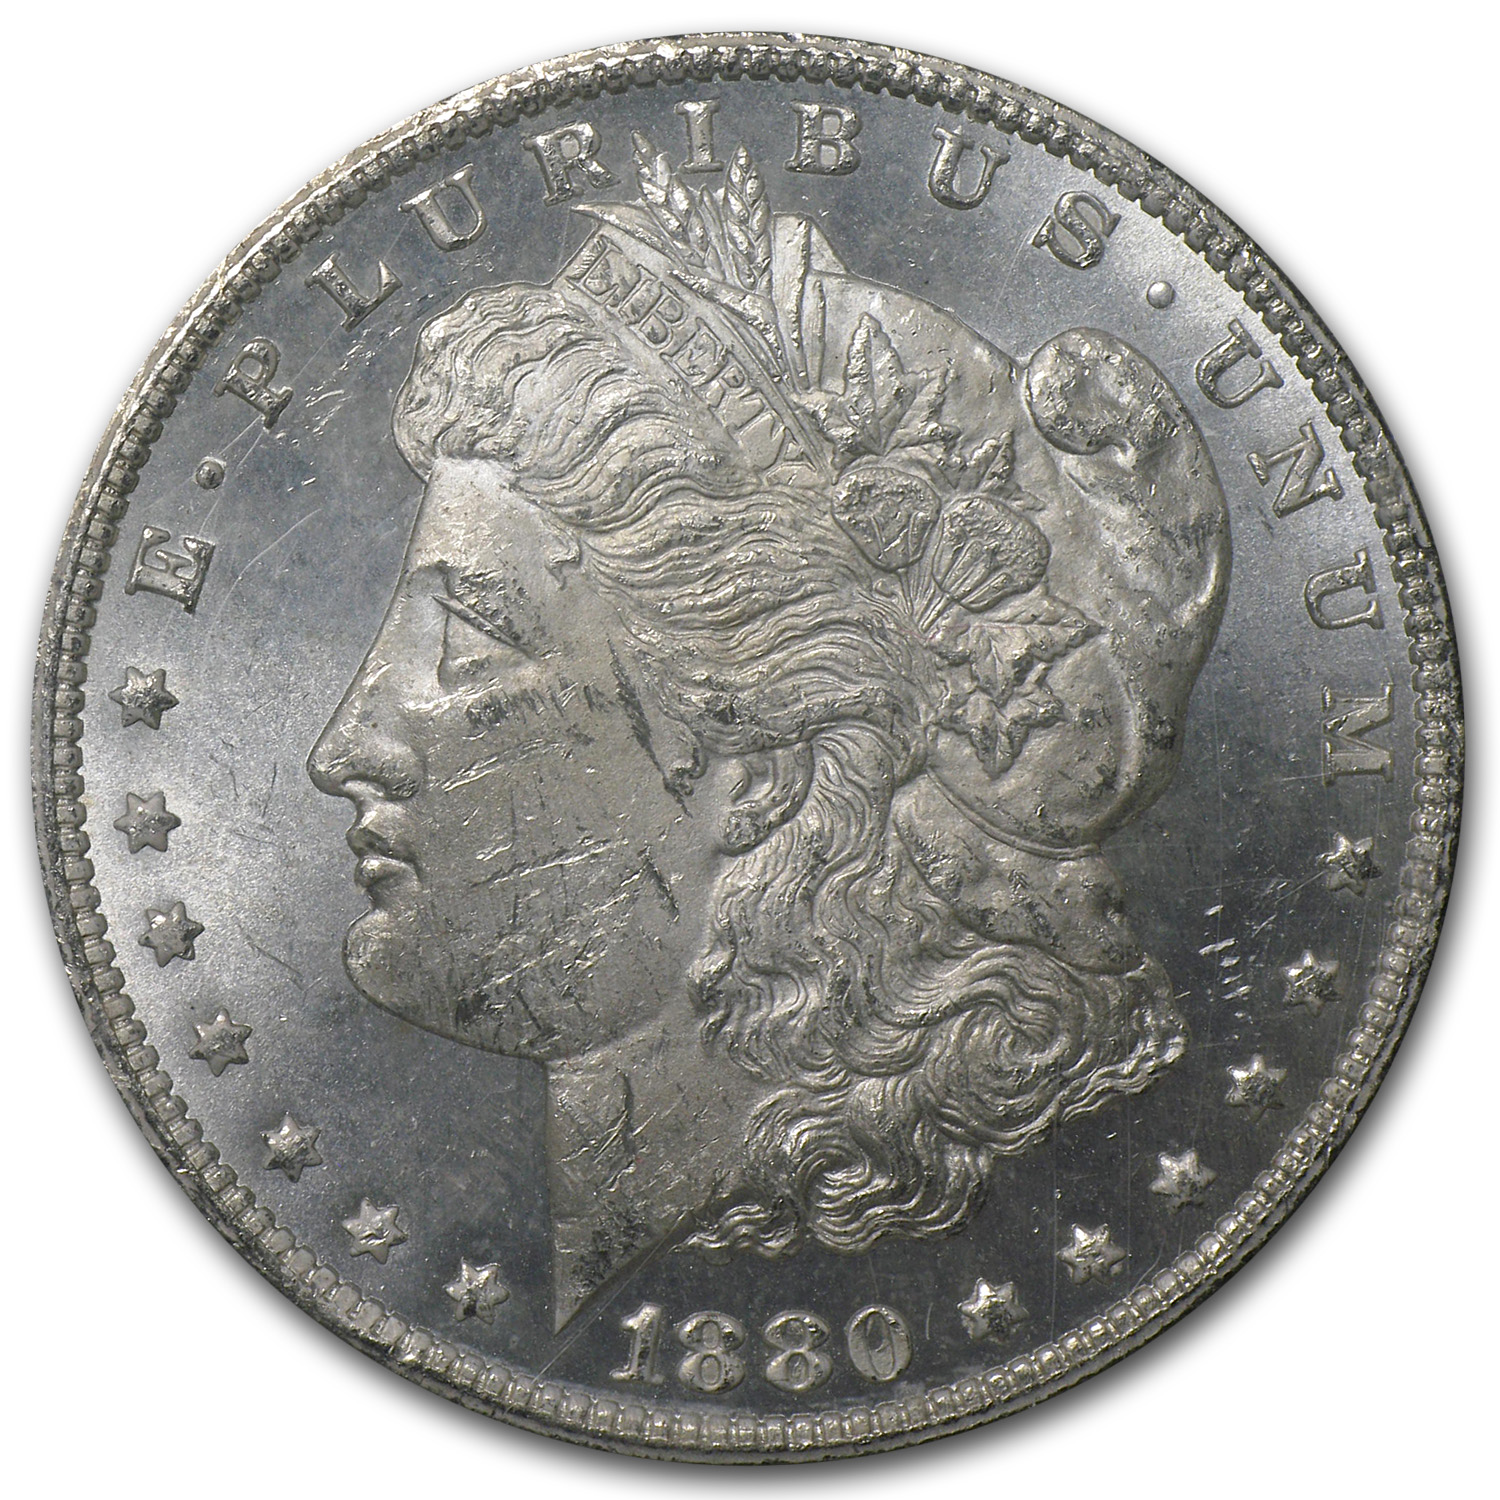 1880/79-CC Reverse of 1878 Morgan Dollar MS-62 PCGS GSA Certified